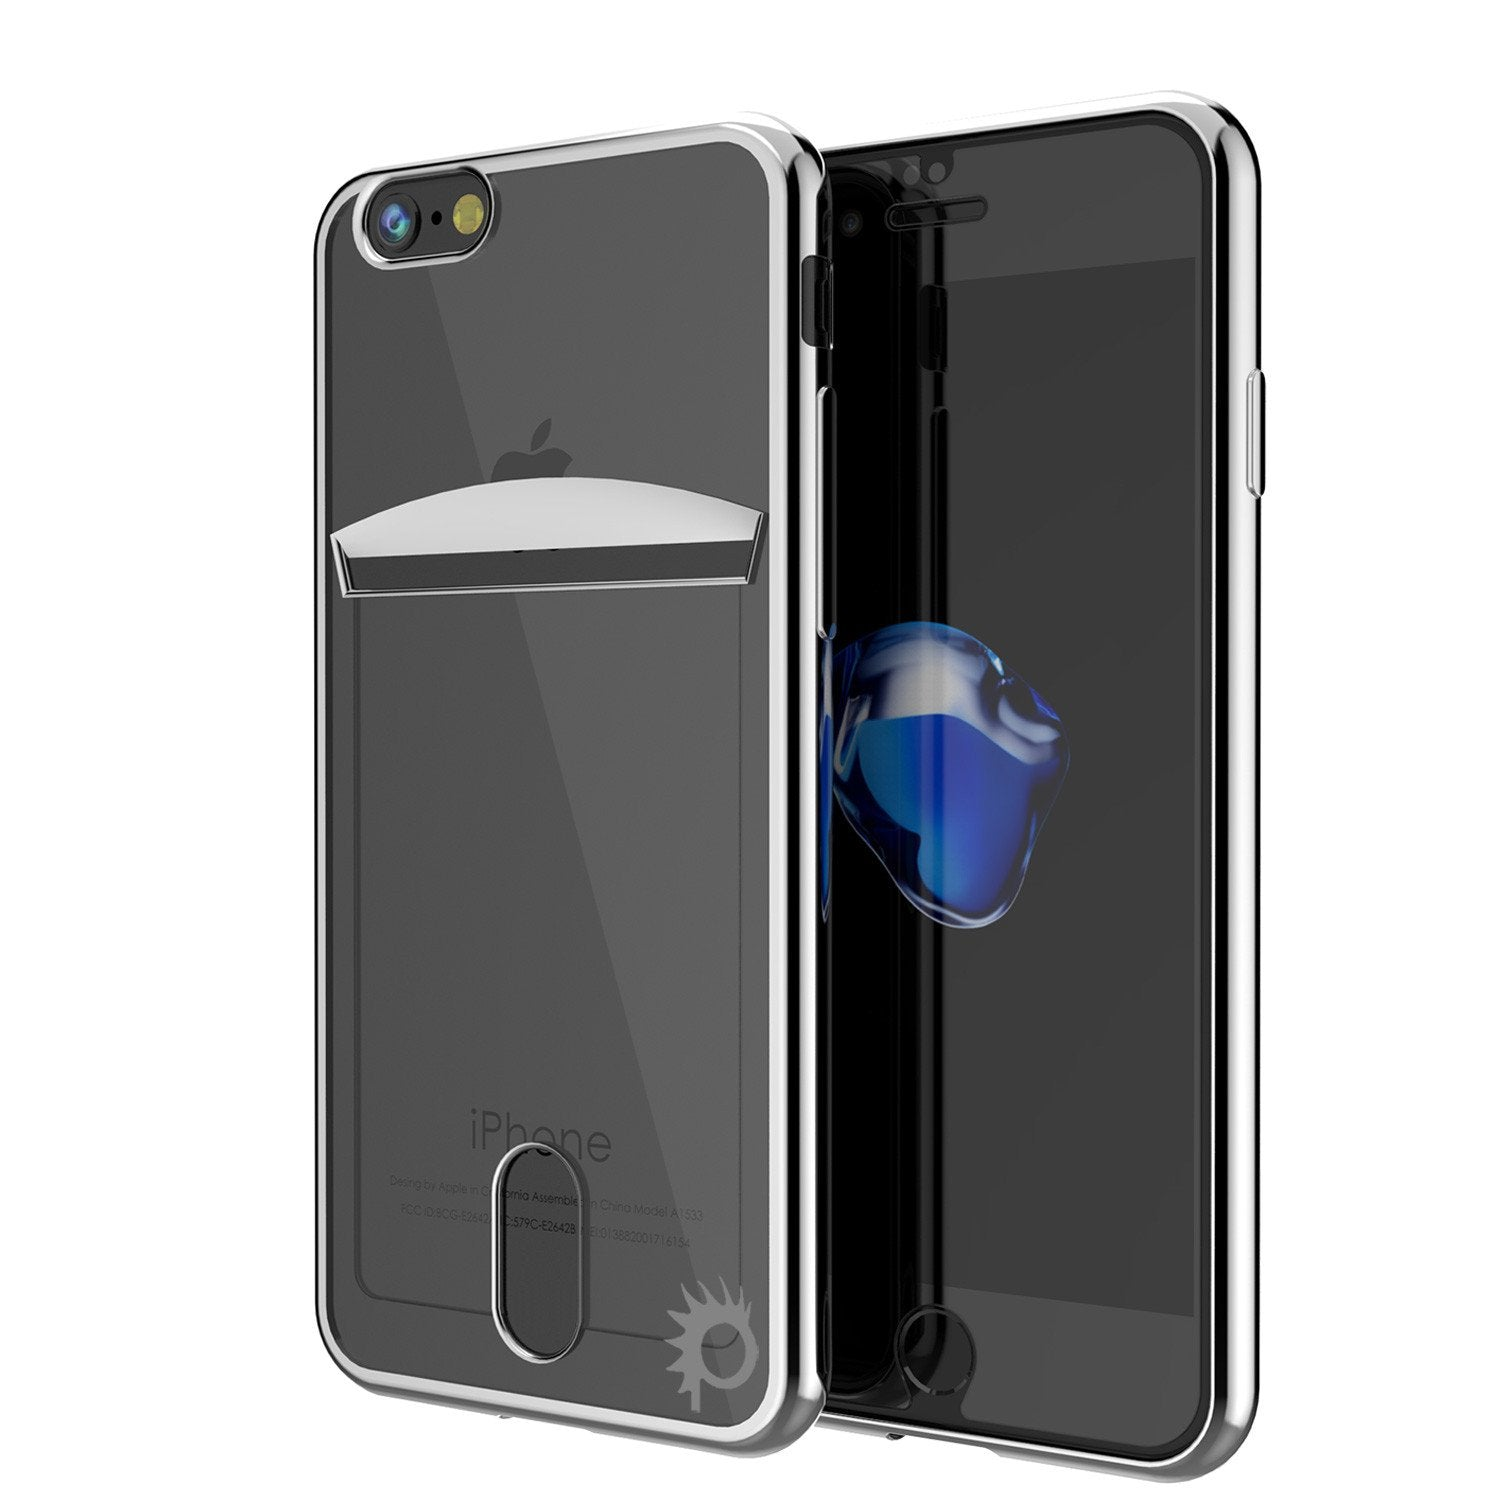 iPhone 7 Case, PUNKCASE® LUCID Silver Series | Card Slot | SHIELD Screen Protector | Ultra fit - PunkCase NZ